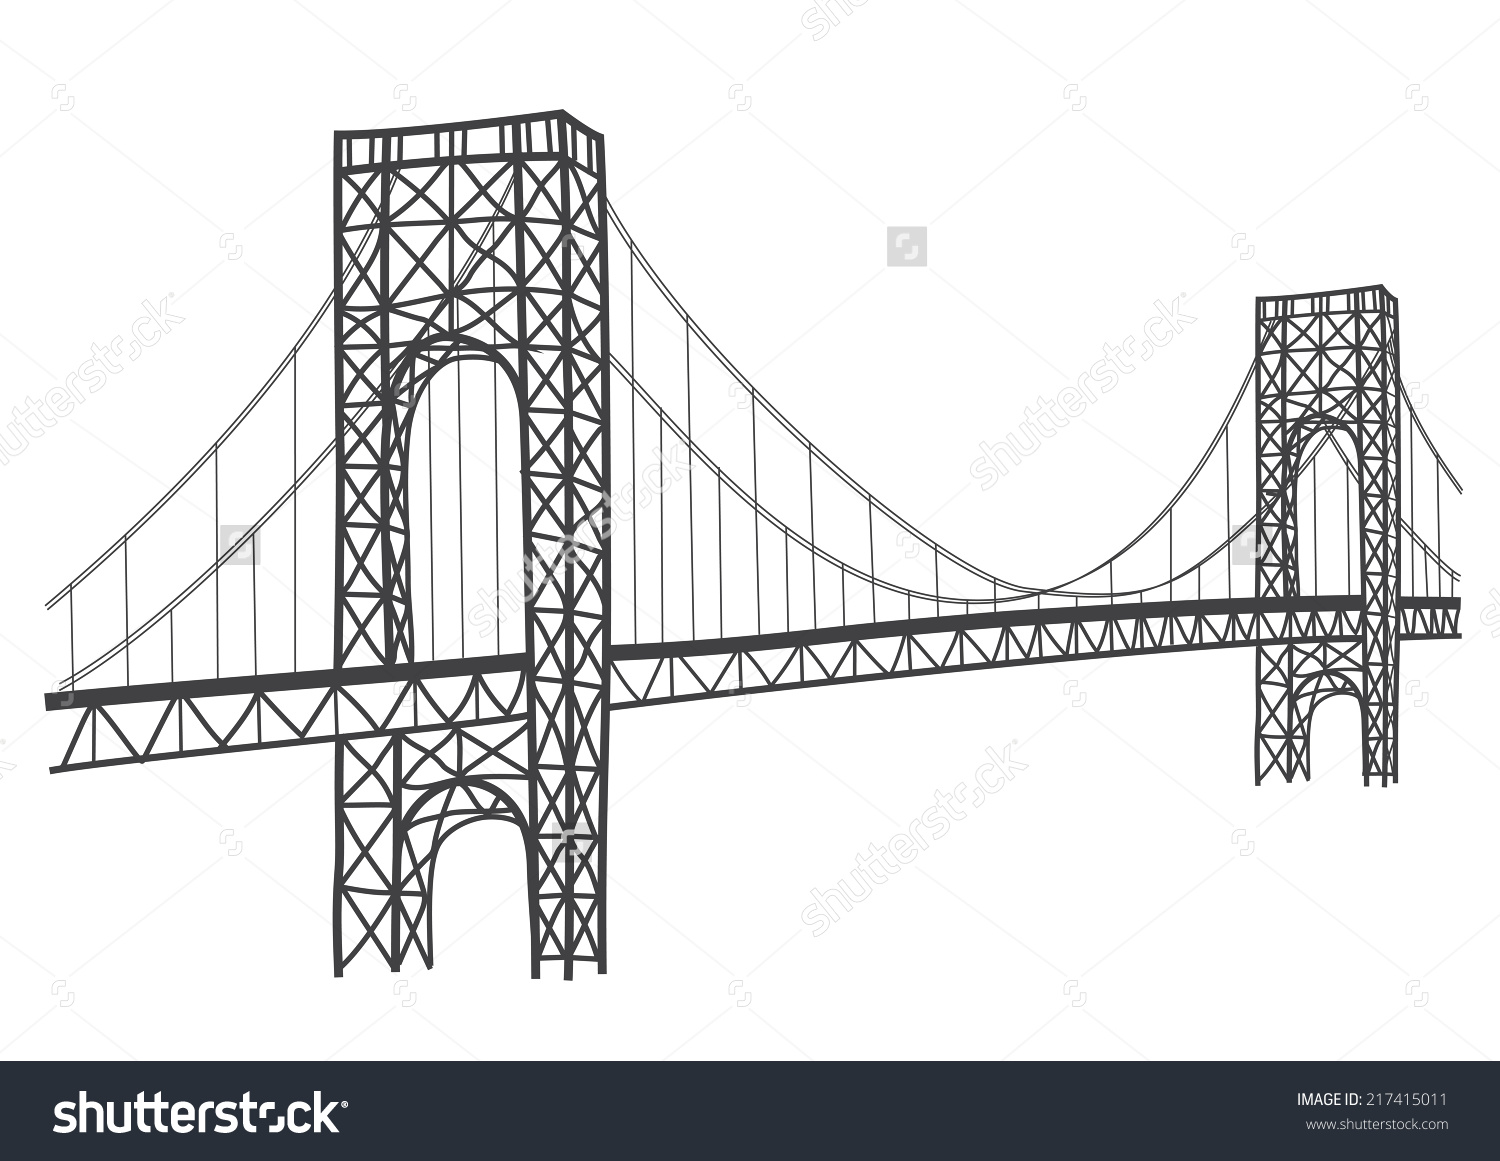 New Bridge Clipart